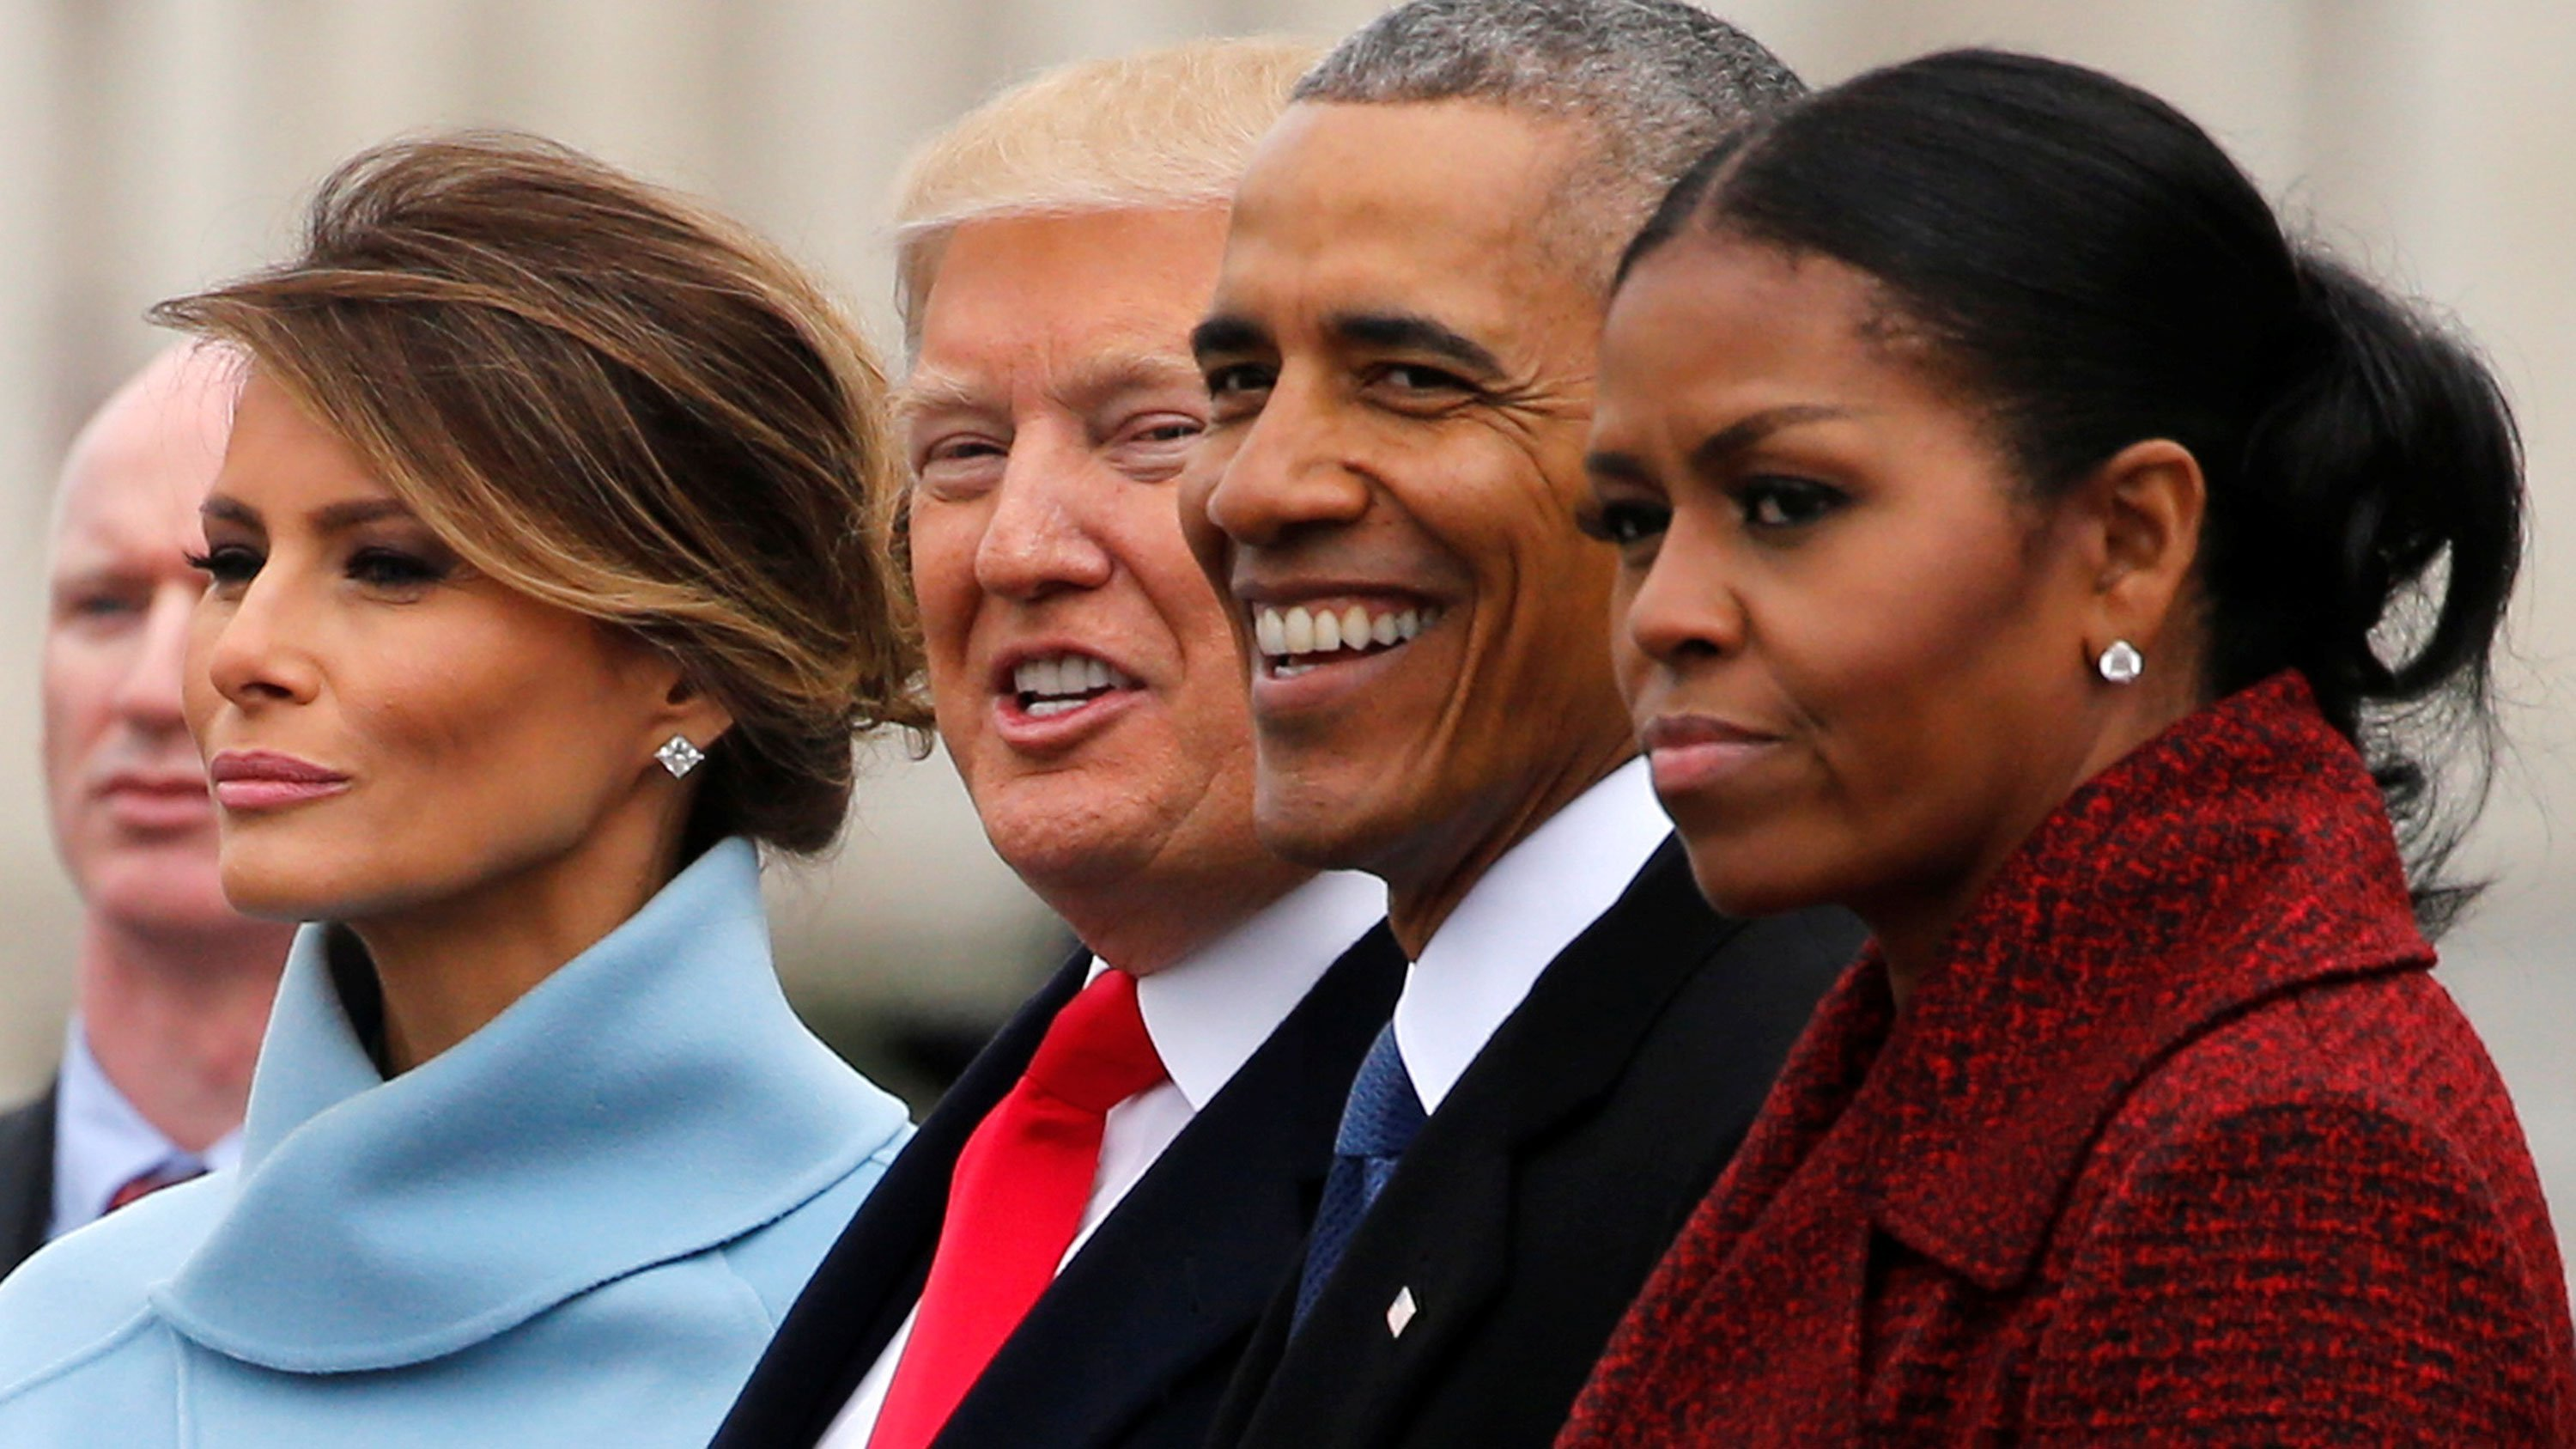 Michelle Obama after Trump's racist tweets: 'What truly makes our country great is diversity'